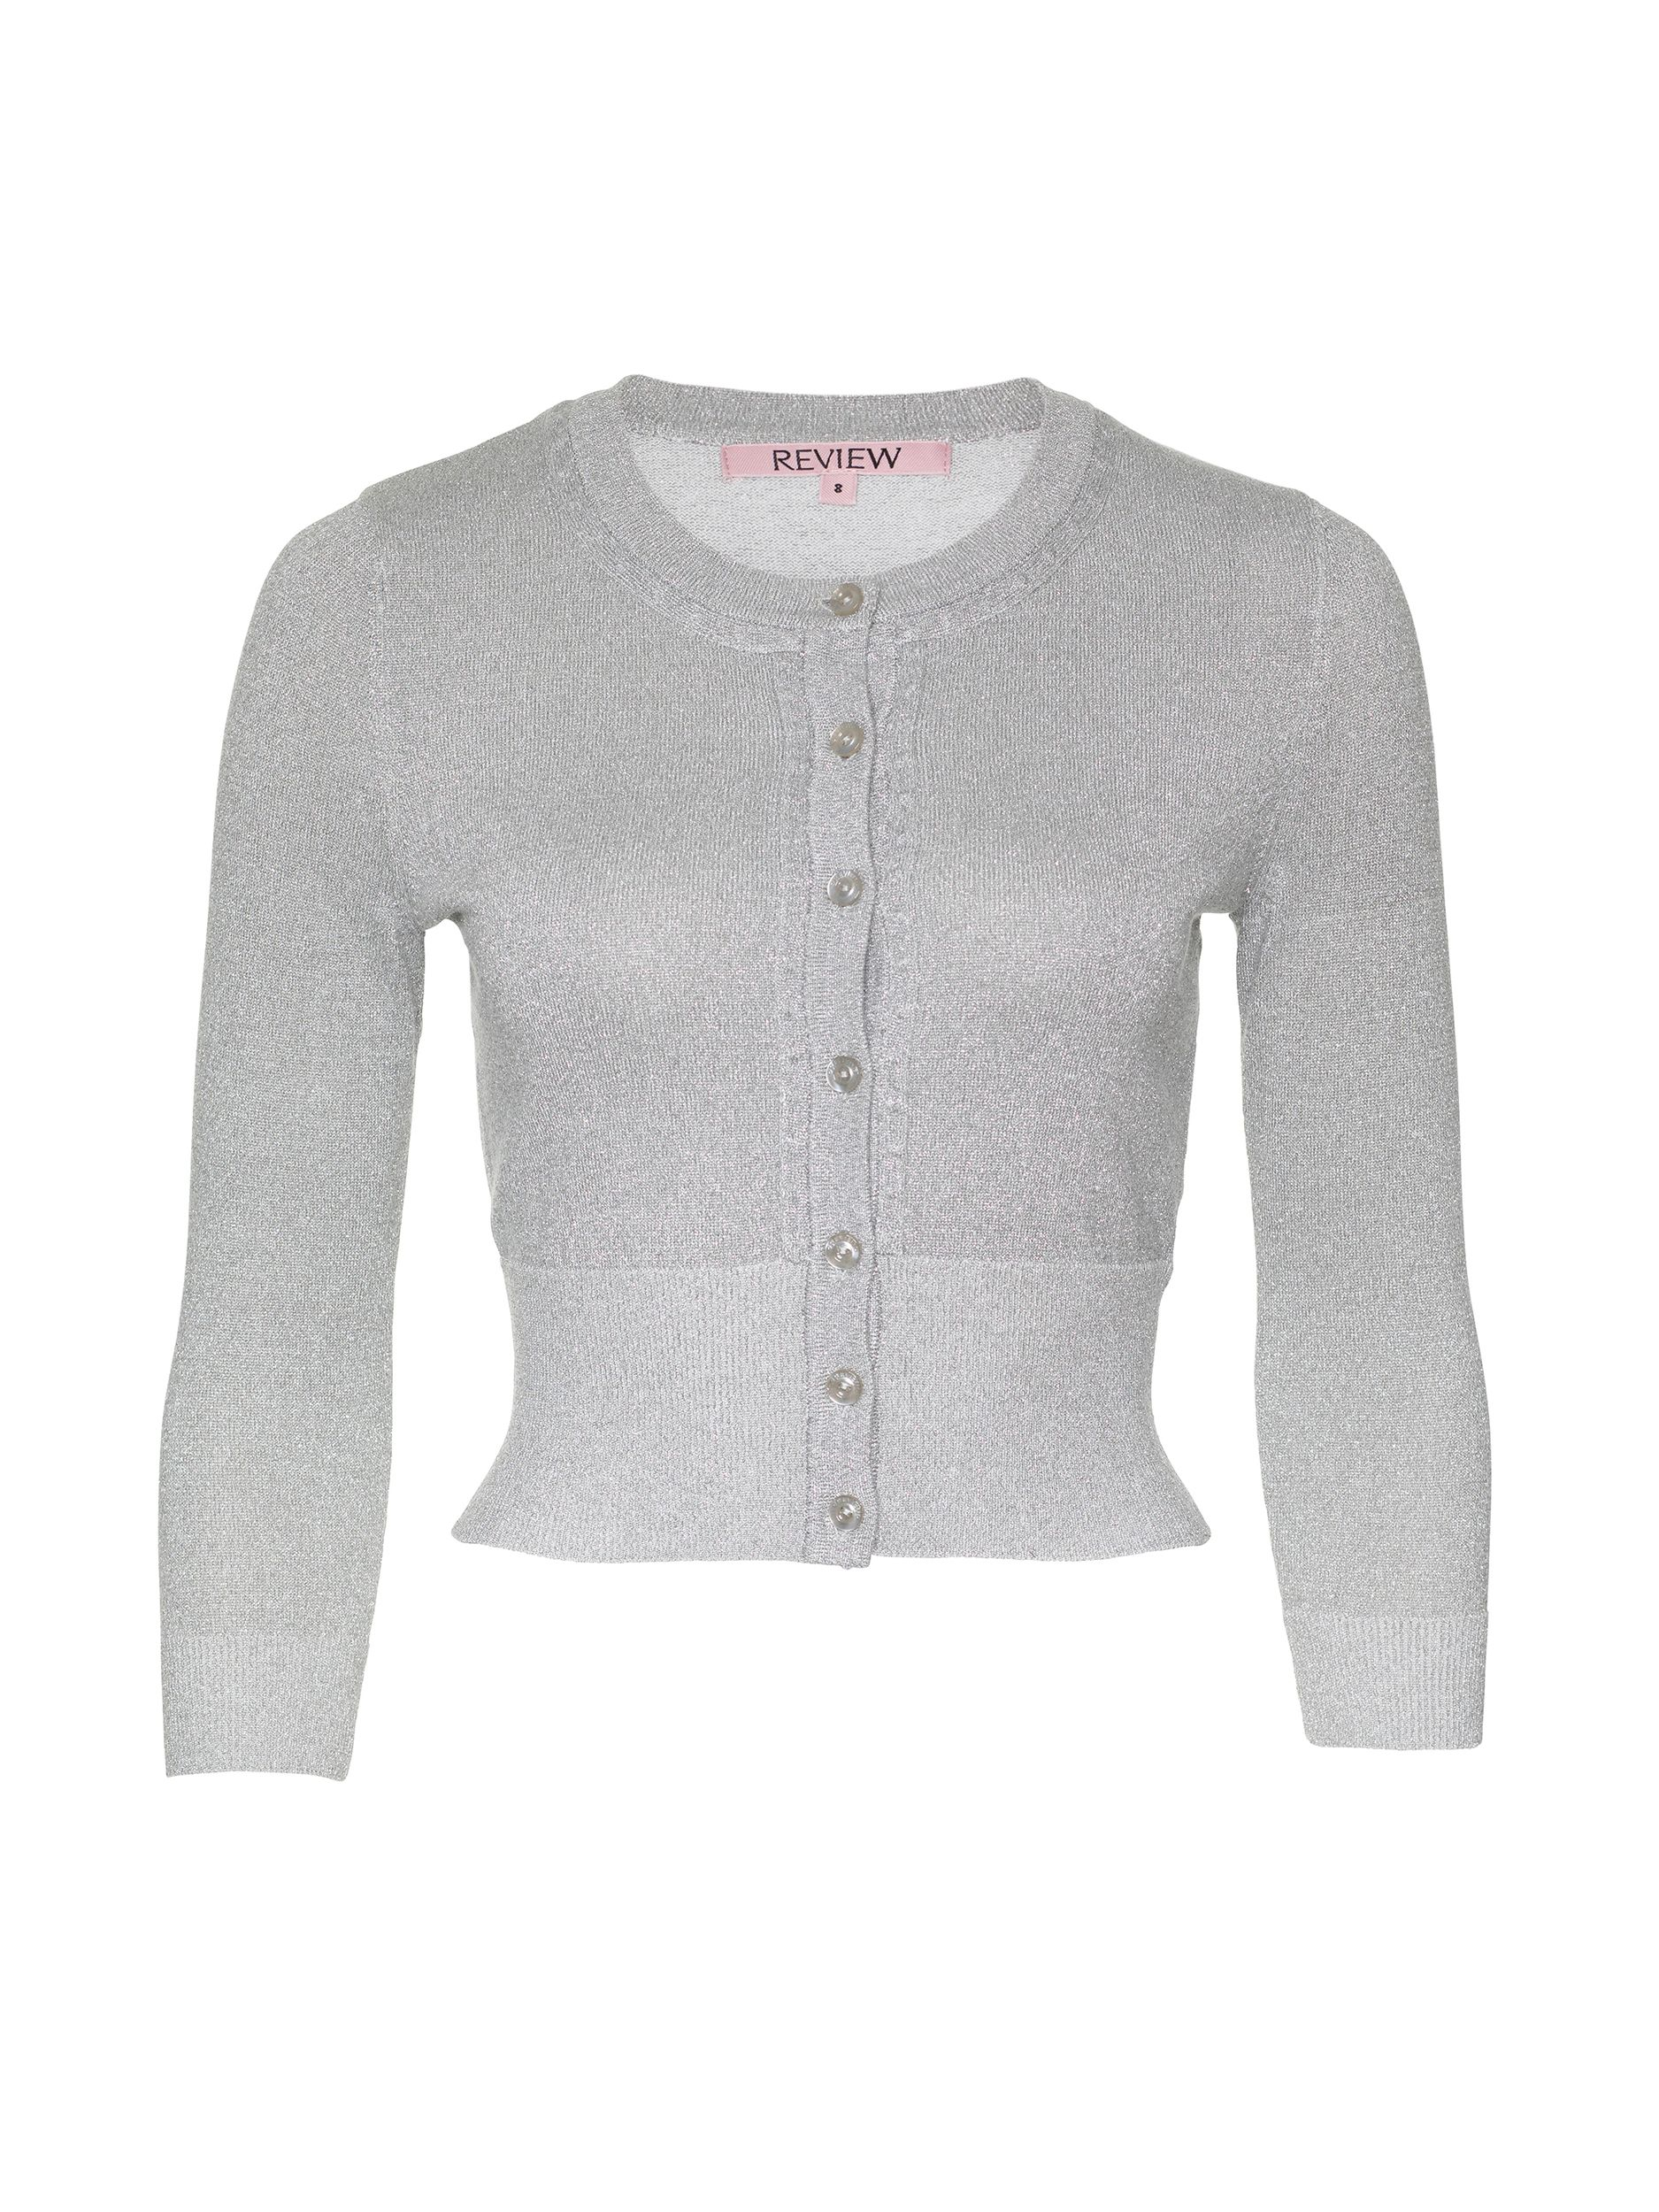 4e955b8c3d0 The classic Chessie 3 4 Sleeve Cardigan in shimmer is the perfect cardi for  any